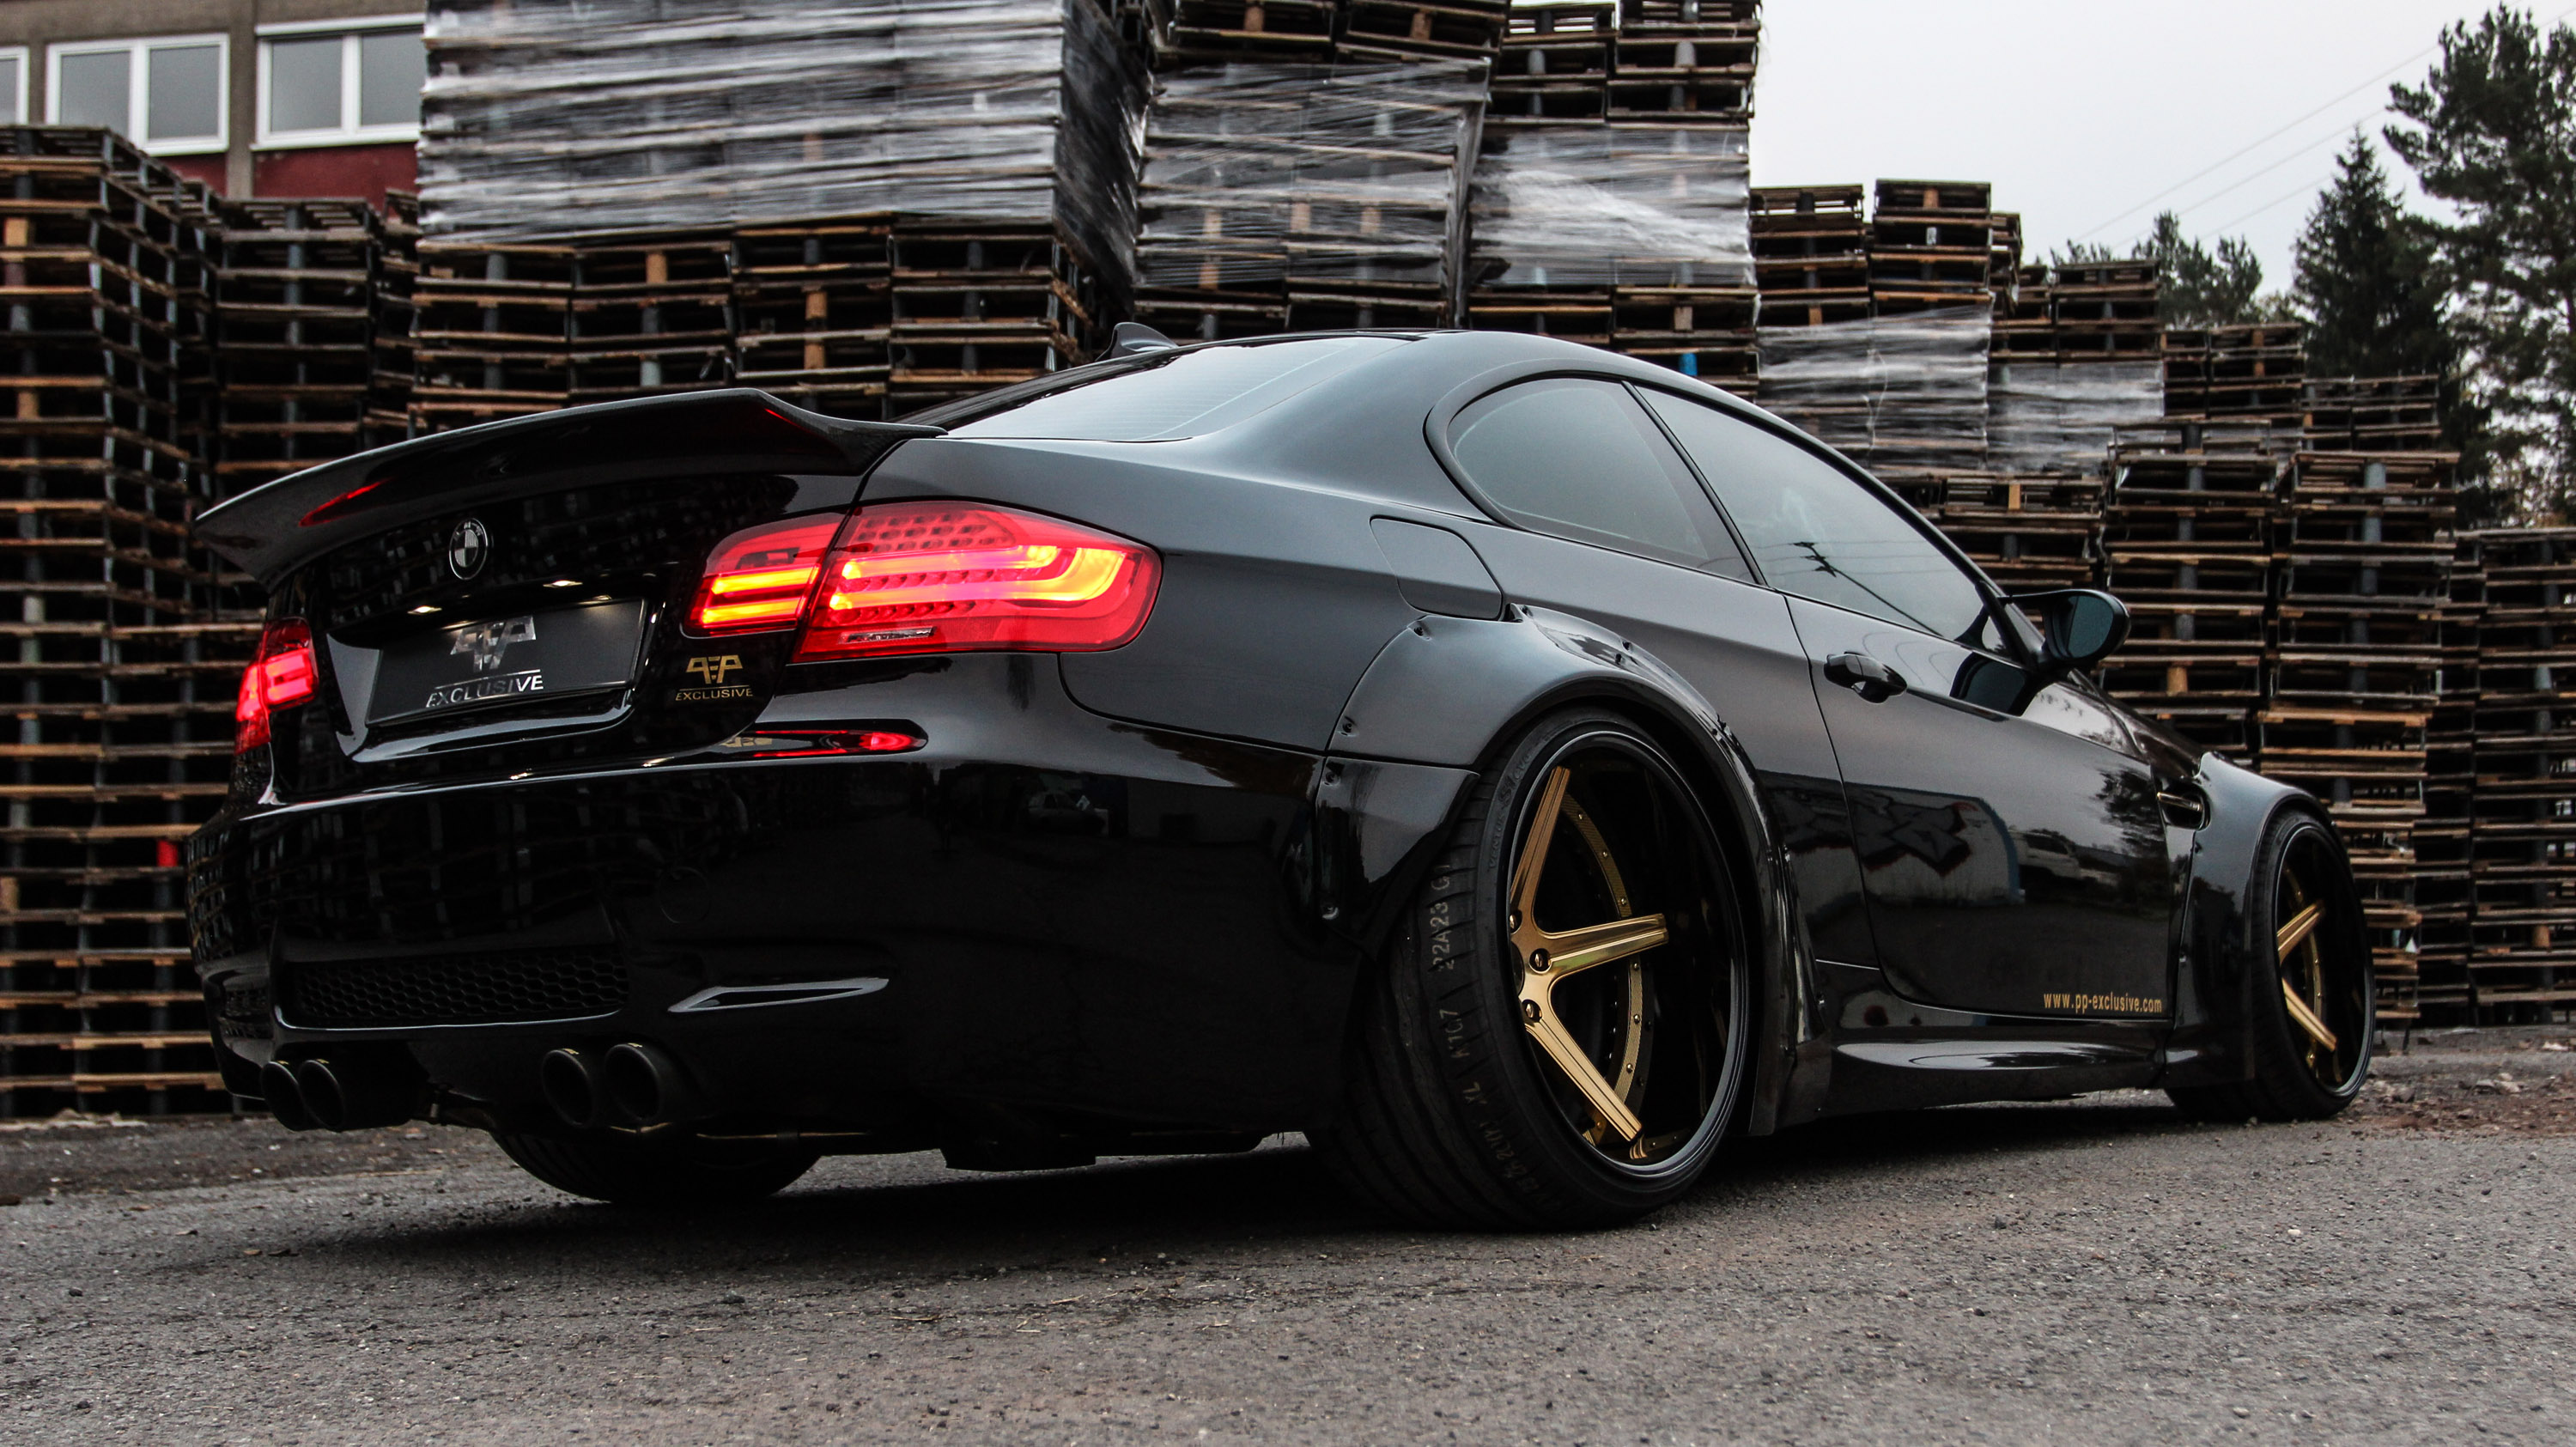 2015 Pp Exclusive Bmw M3 E92 Liberty Walk Bmw E92 Coupe Tuning 1691671 Hd Wallpaper Backgrounds Download